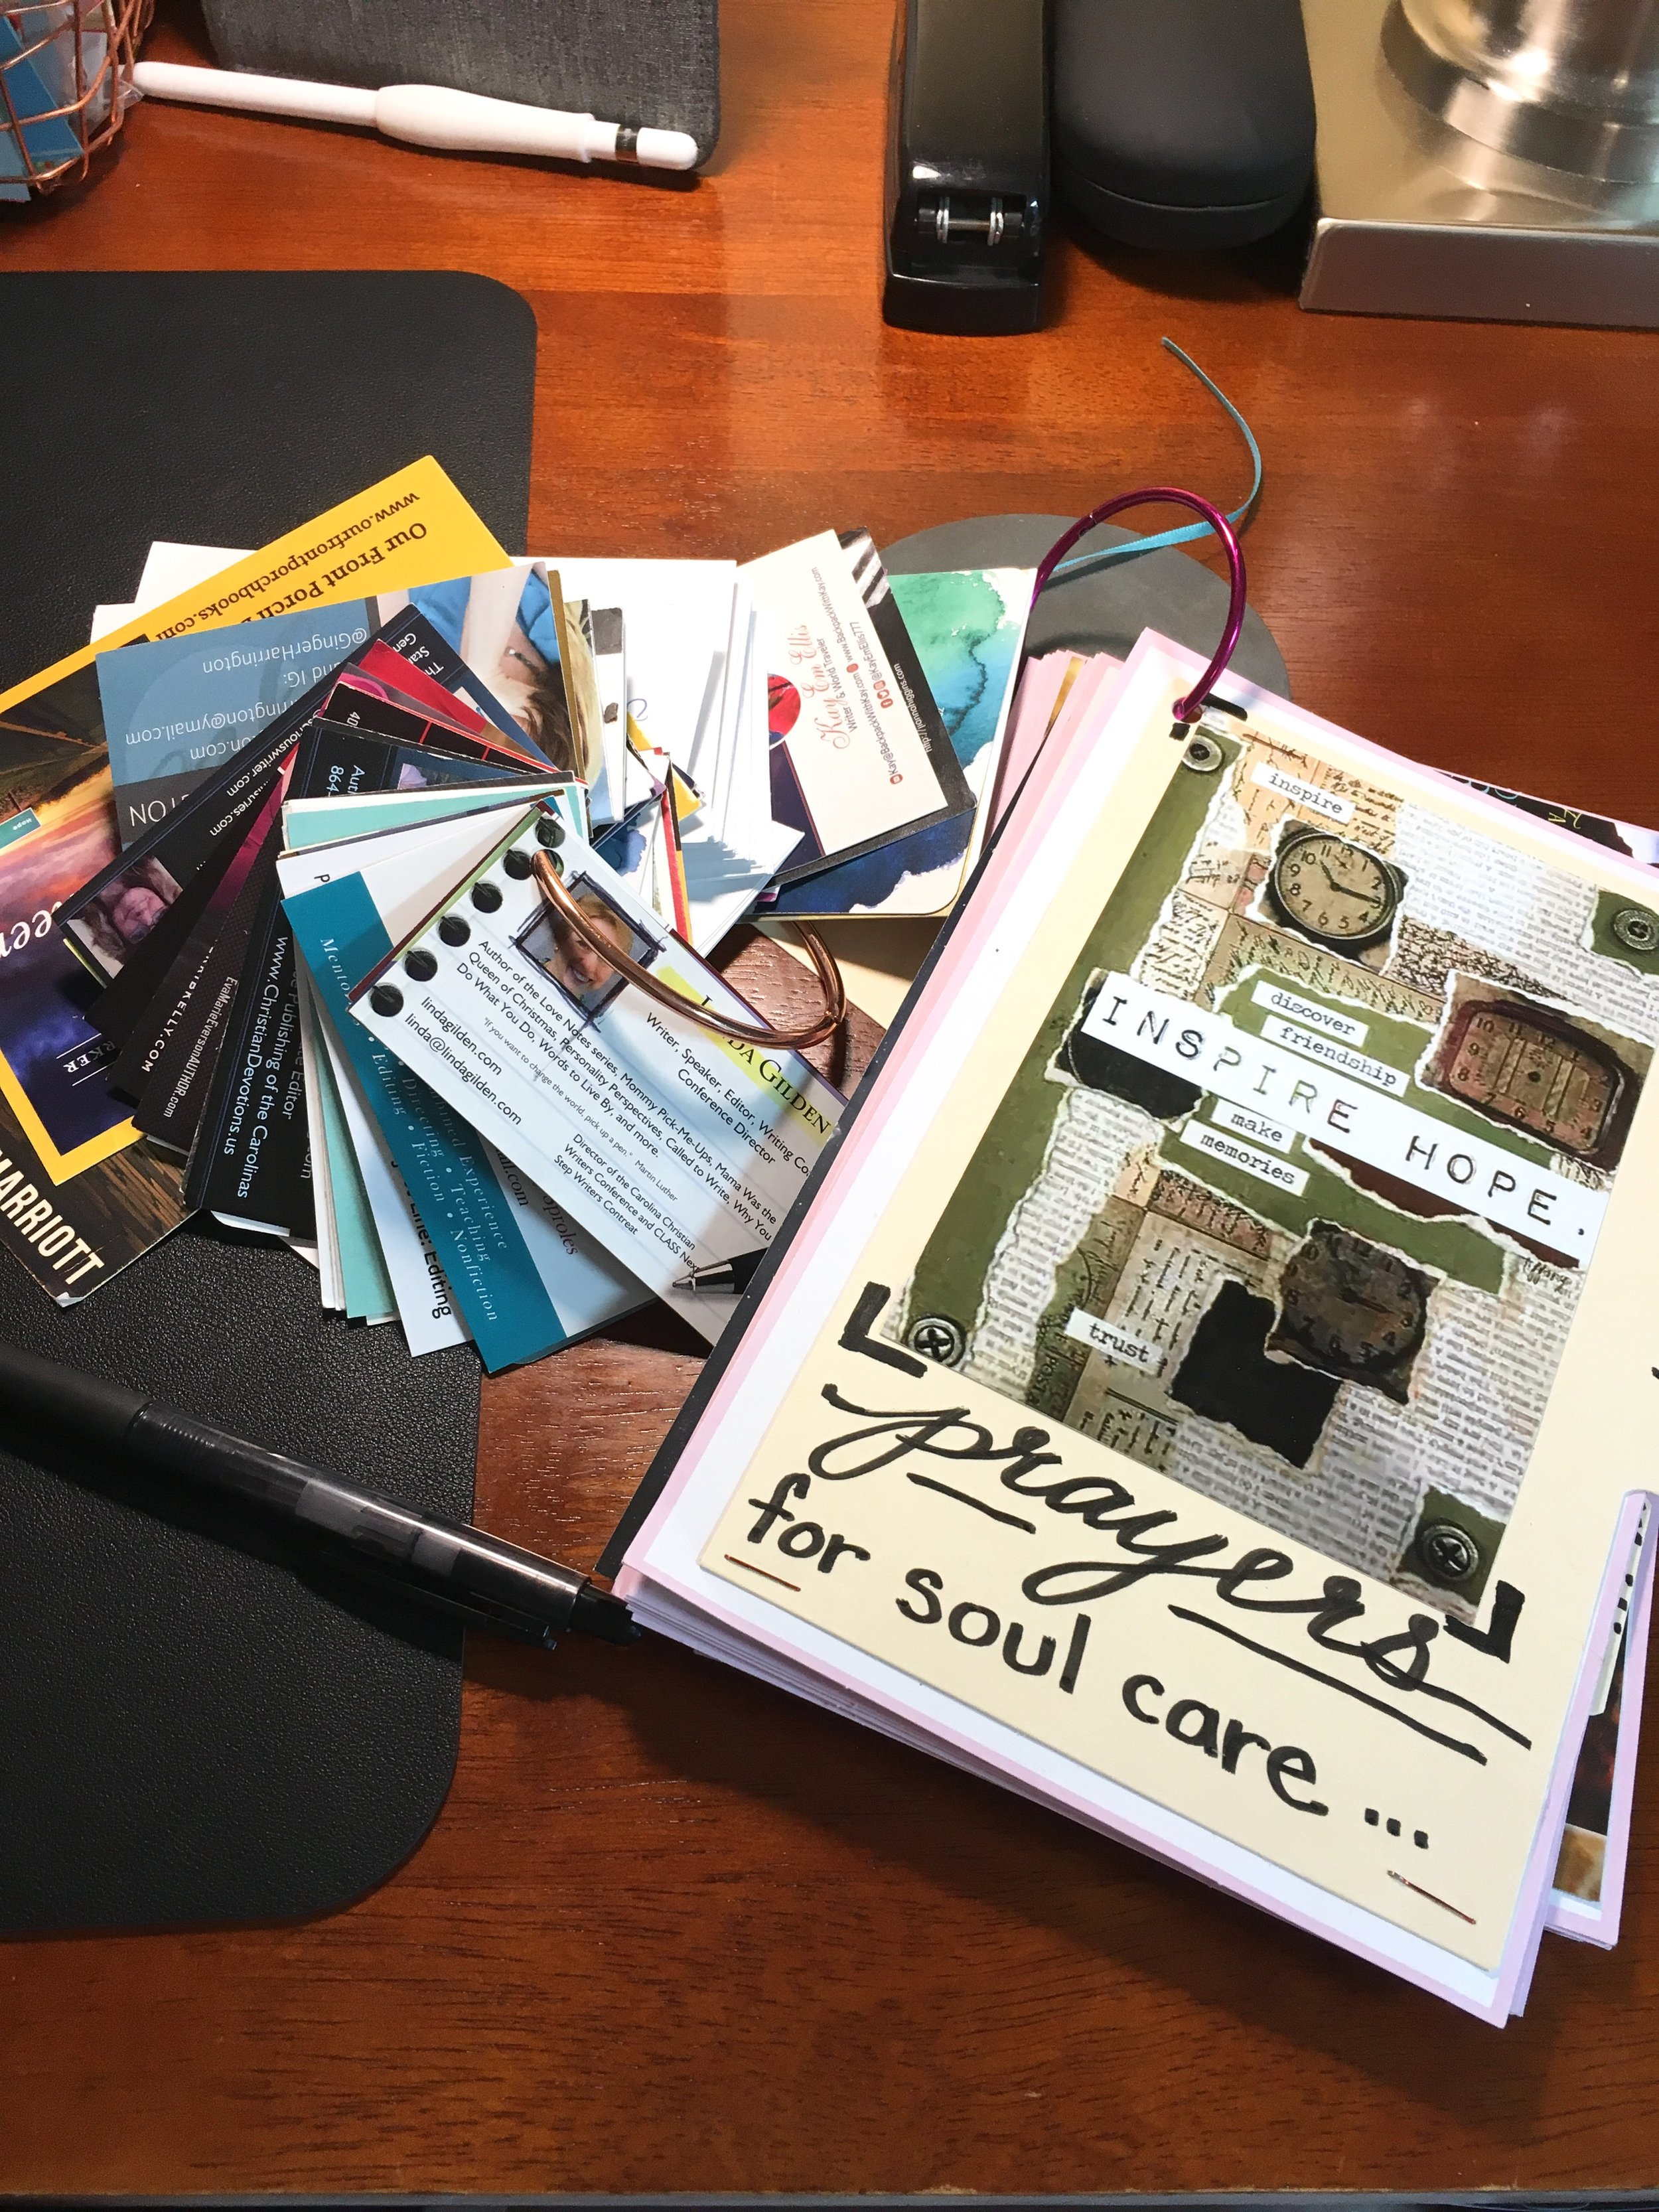 Soul Care Prayer Book and Business cards.jpg